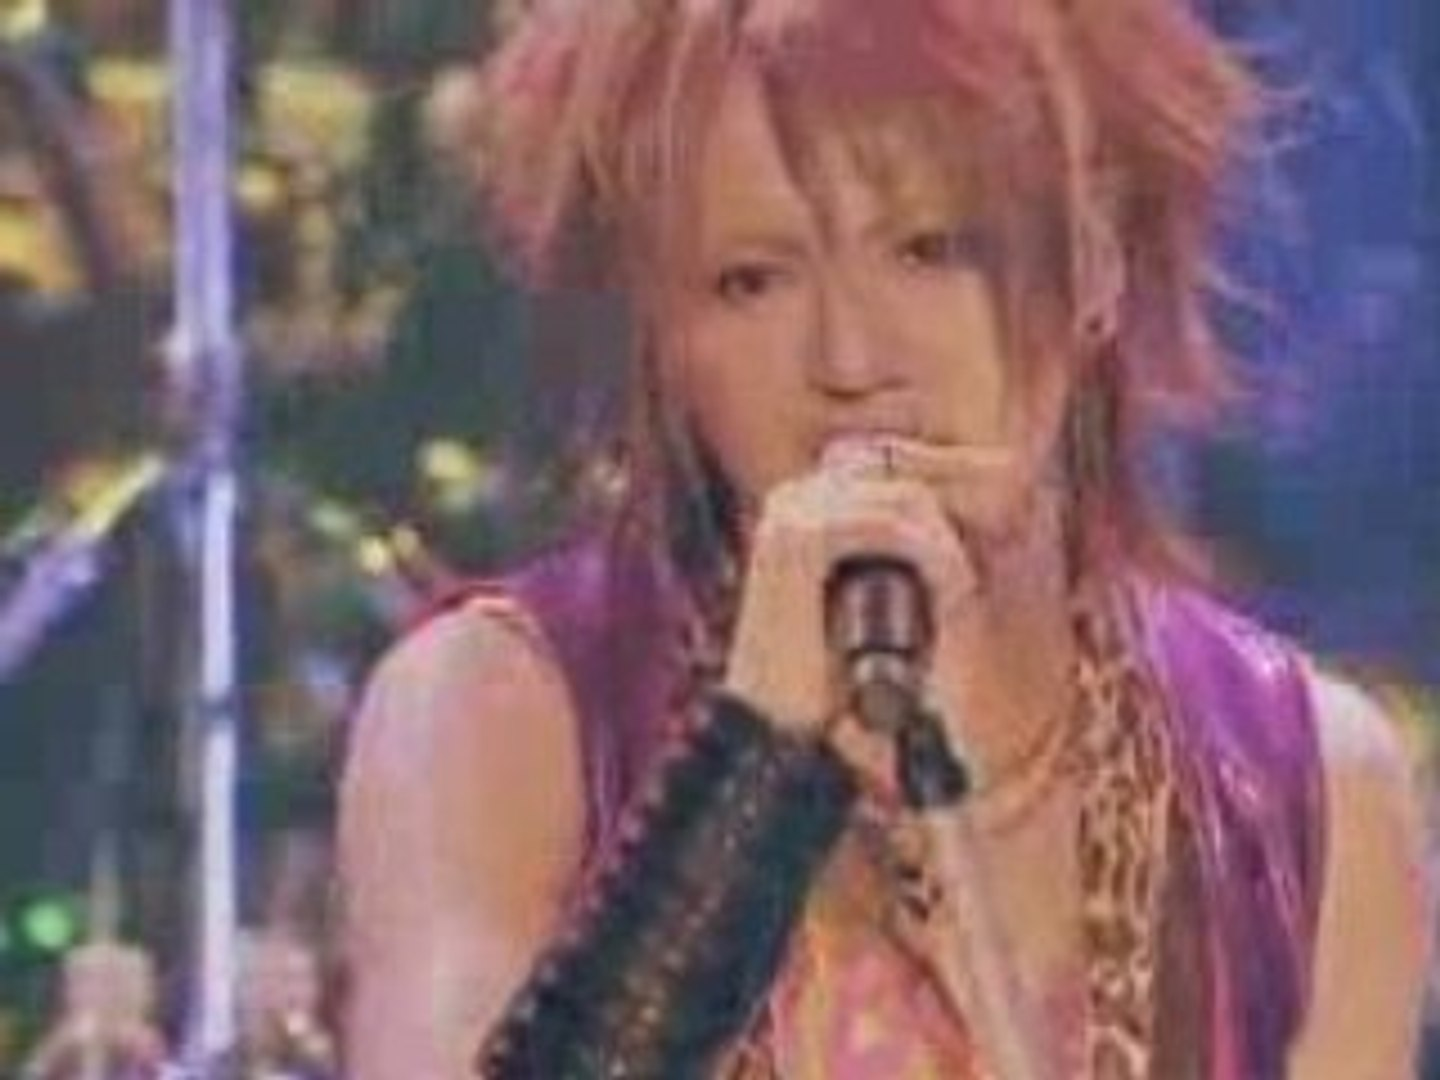 Alice nine. RAINBOWS live - Discothèque-play like a rainbows